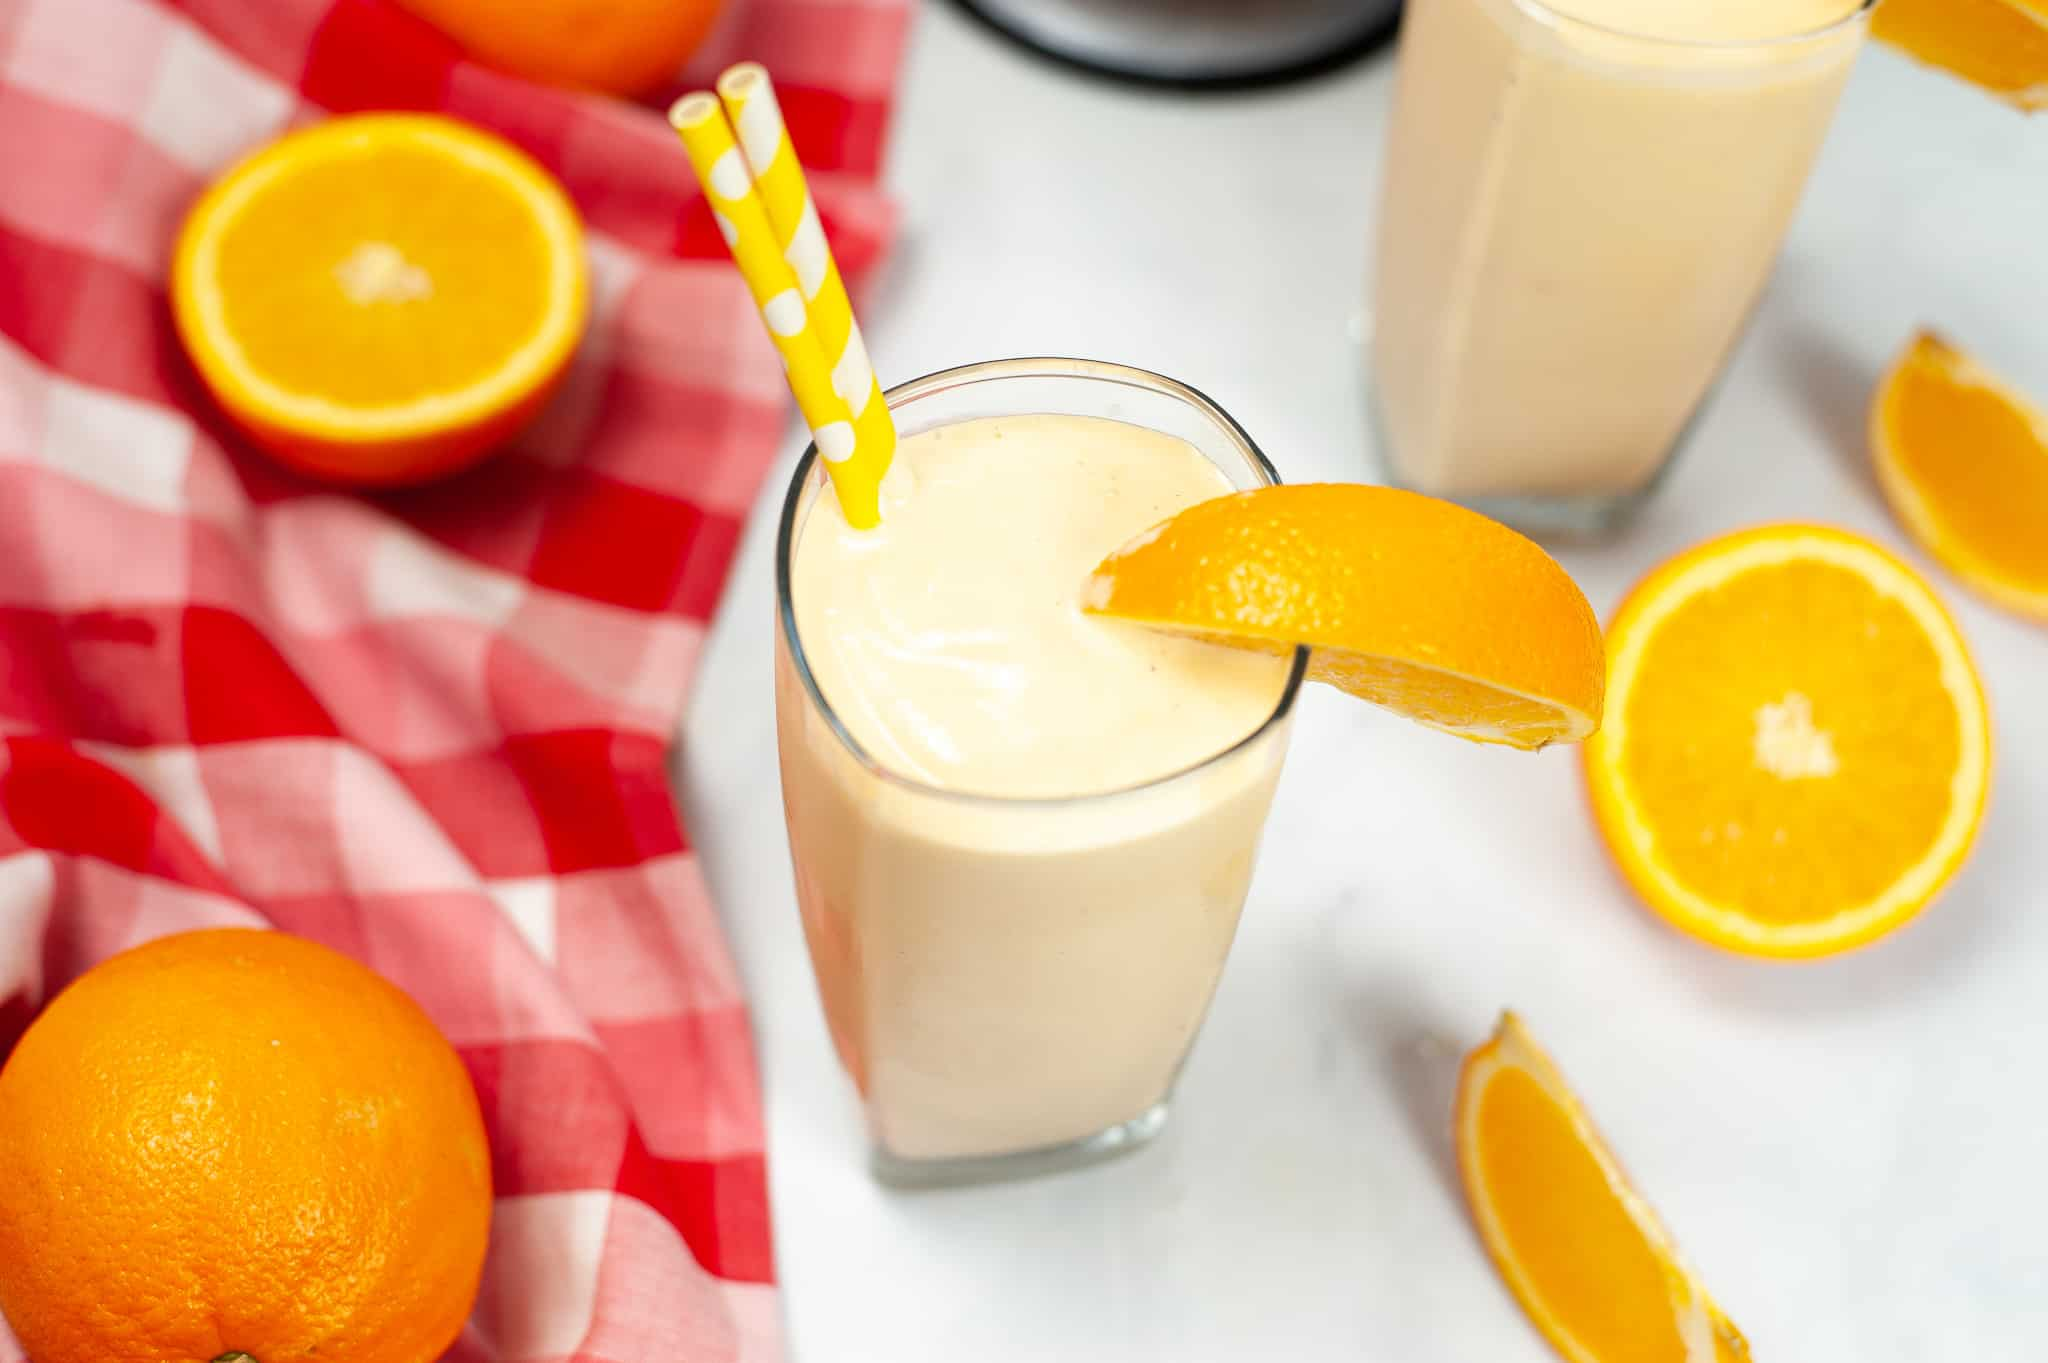 Red and white check napkin with slices of orange and two orange creamsicle milkshakes.